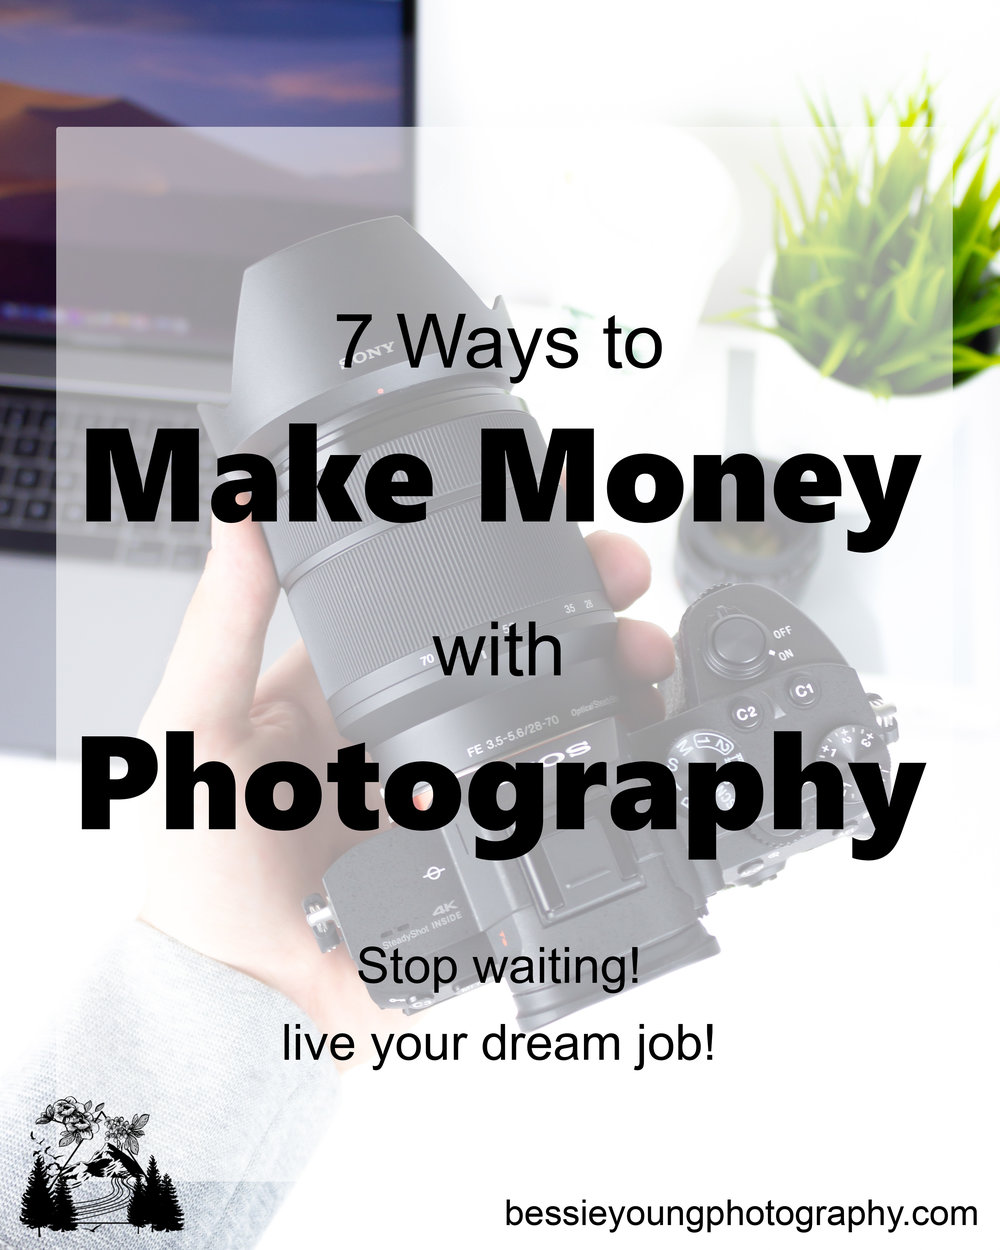 7 Ways to Make Money with Photography you can live your dream job by Bessie Young Photography.jpg